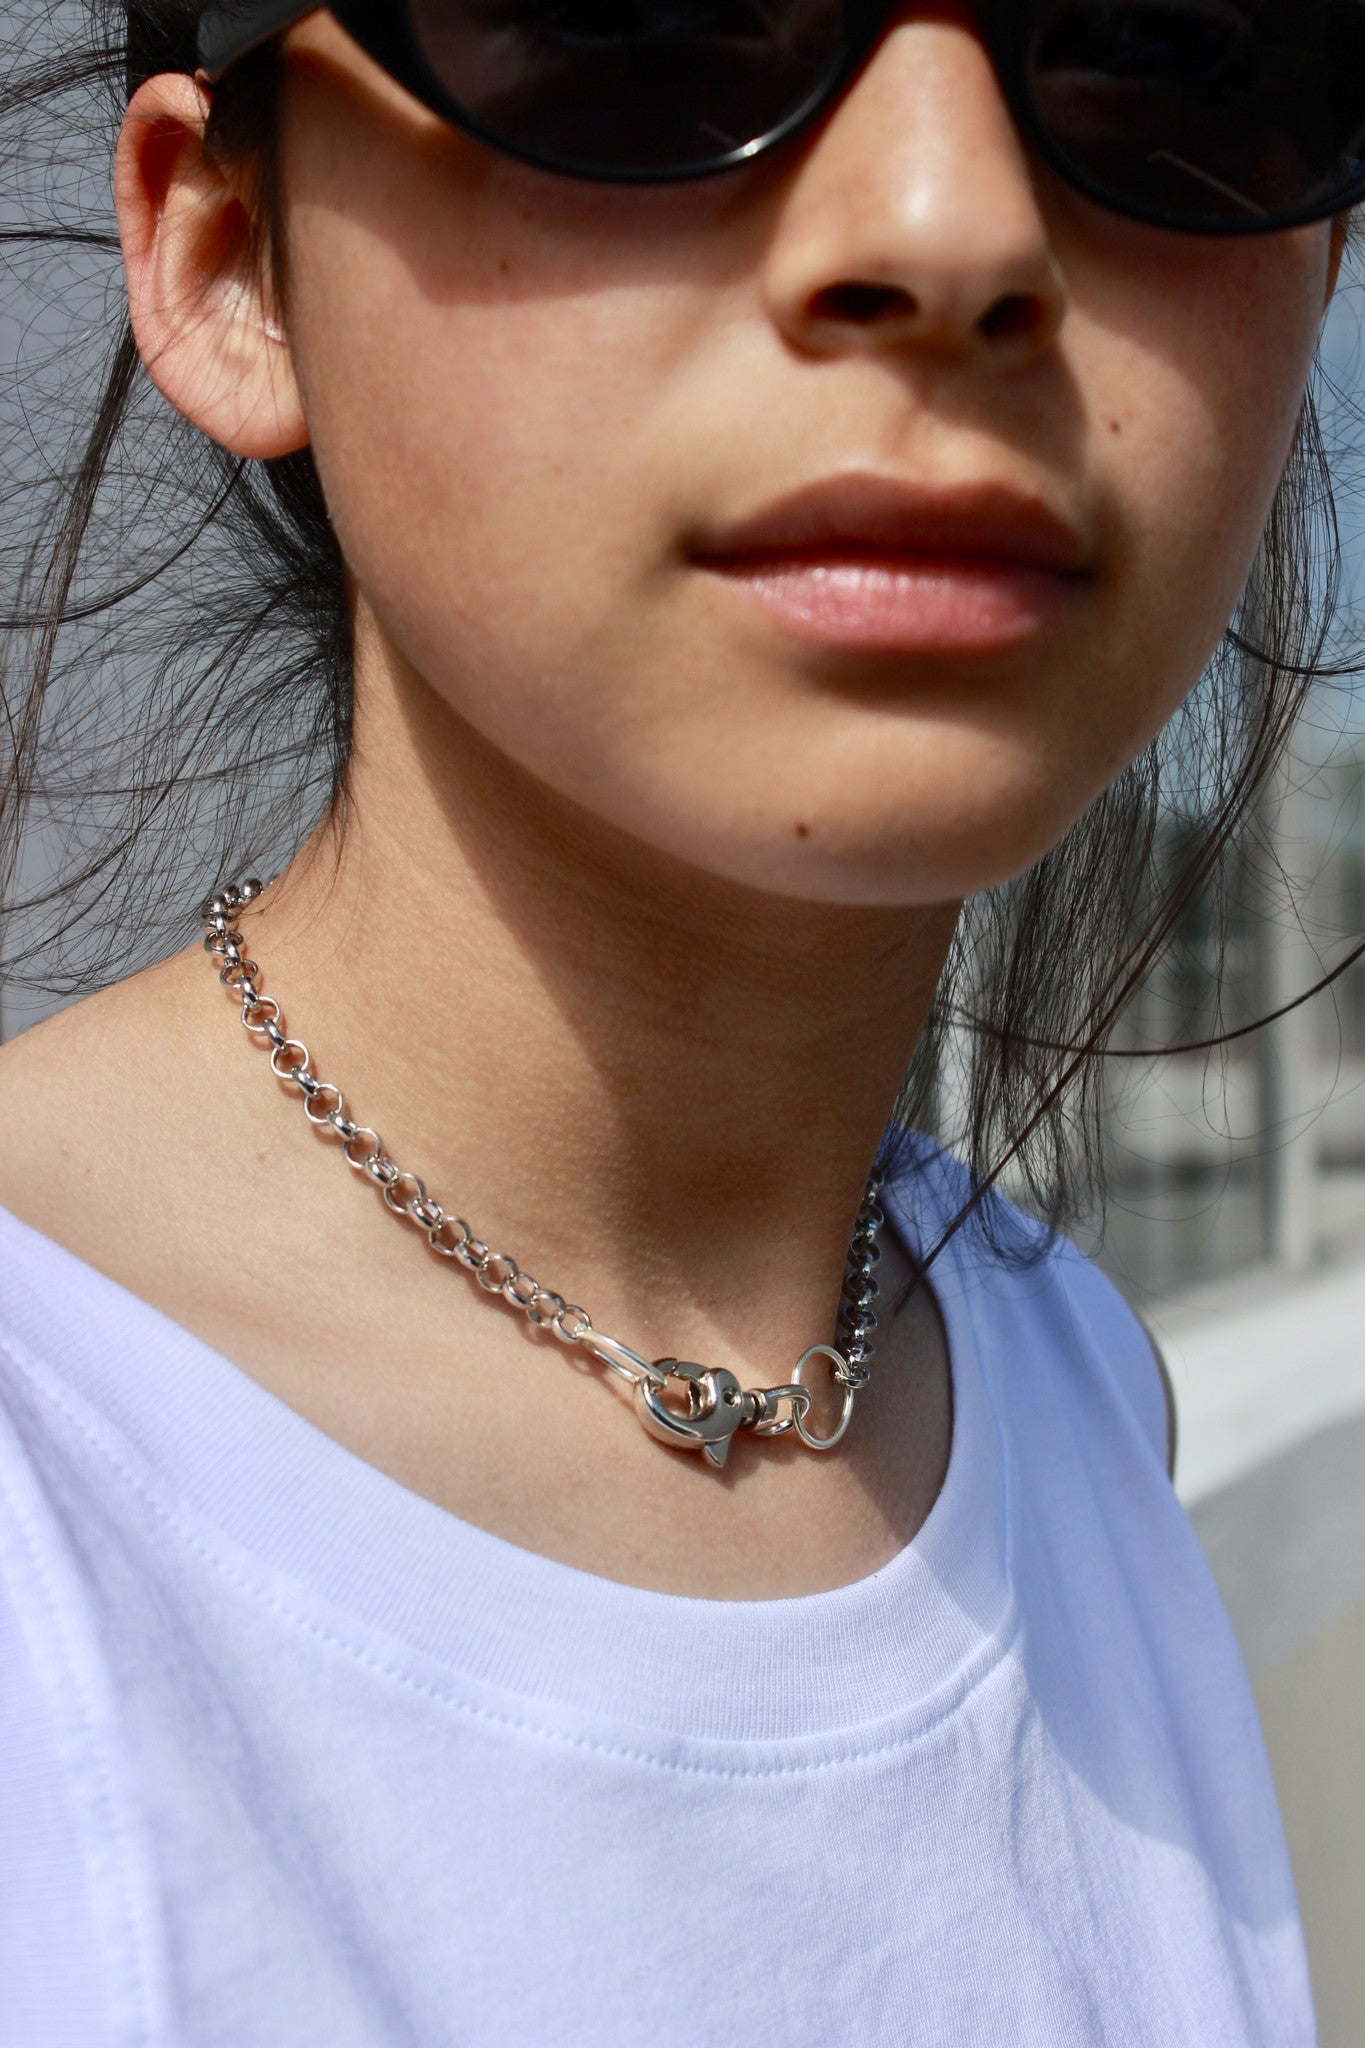 Lobster clasp street wear choker for an edgy fashion statement